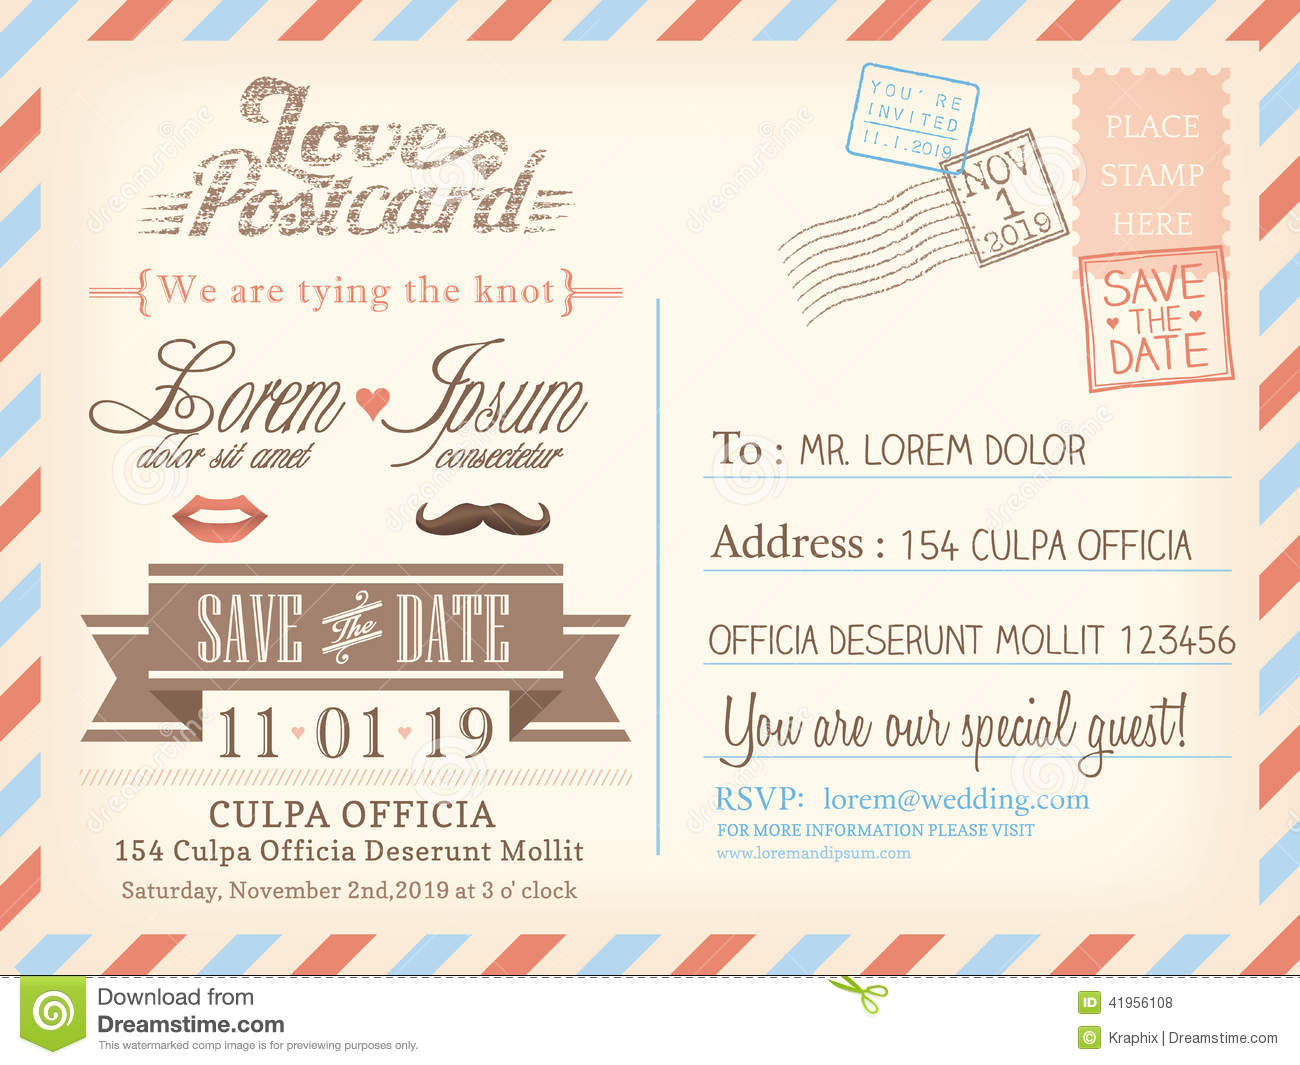 Postcard invitation templates free selol ink postcard invitation templates free stopboris Images